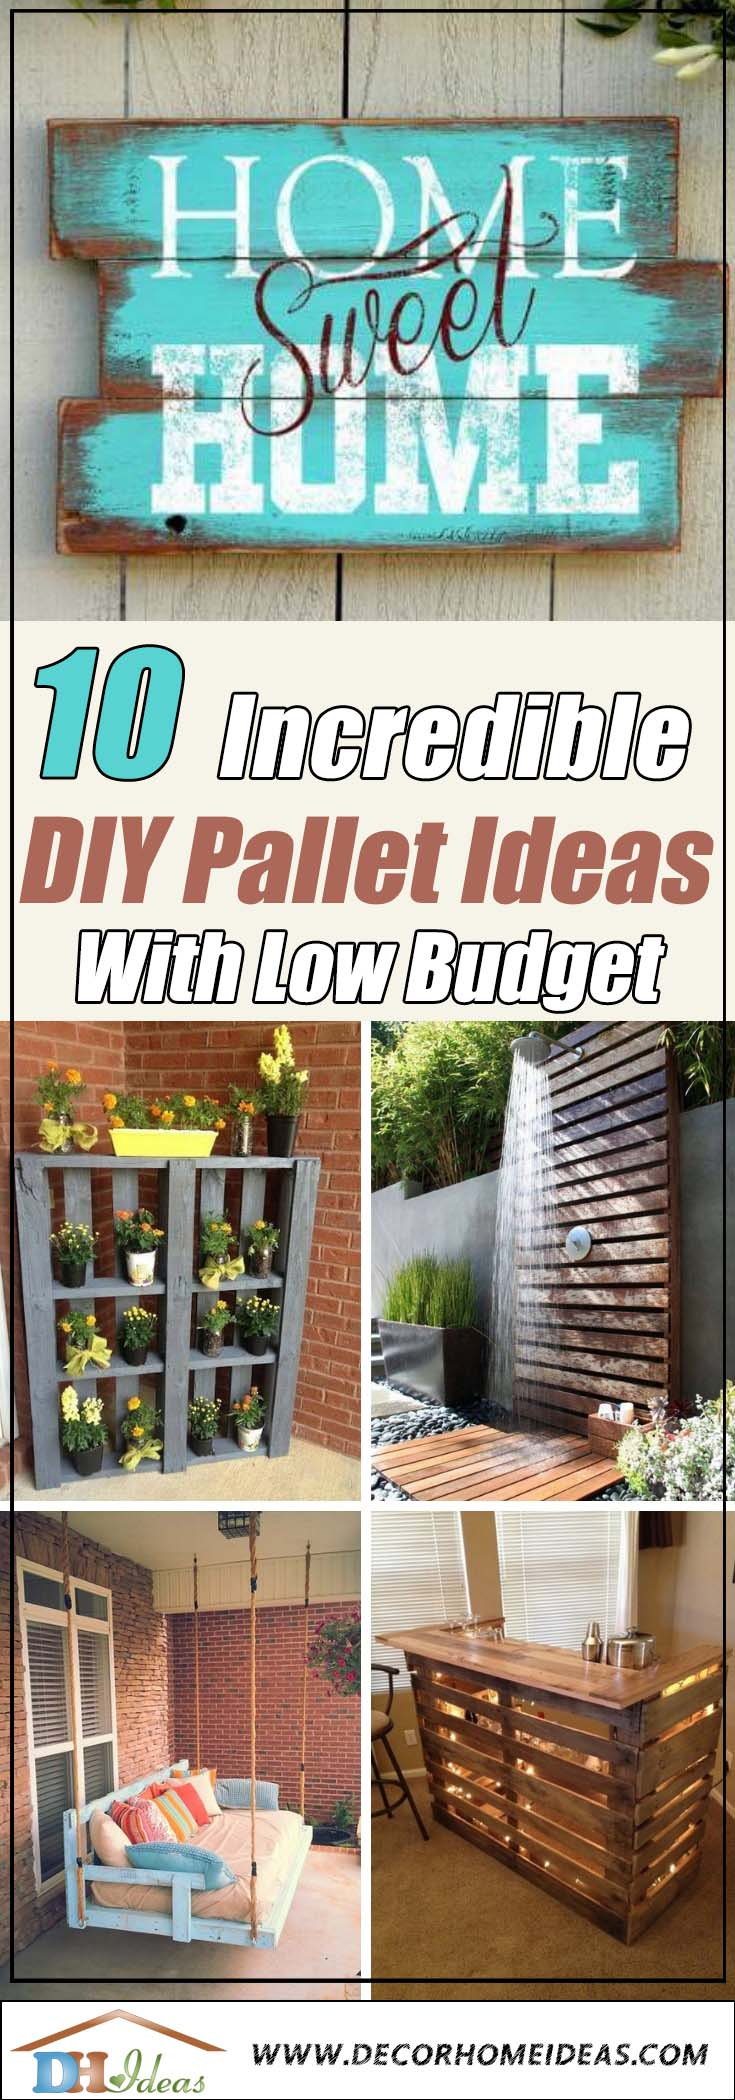 10 DIY Pallet Ideas With Low Buidget | Inspire yourself with these great DIY wooden pallet ideas and designs. #pallet #diy #pallets #furniture #makeover #repurpose #woodenpallet #homedecor #decoratingideas #decorhomeideas